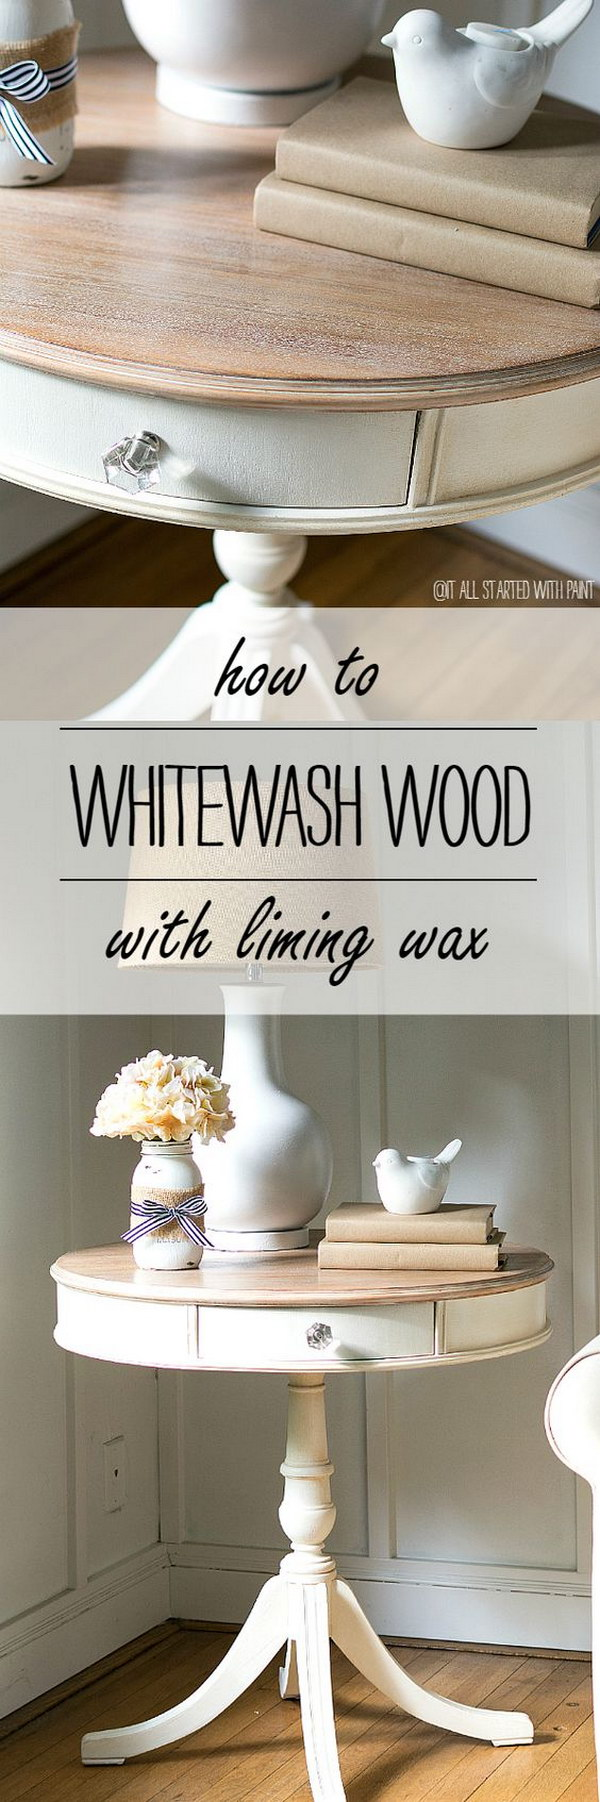 diy side table ideas with lots tutorials gold accent decor drum makeover using chalkpaint and whitewashed wood technique patio umbrella lights black end pottery barn dining